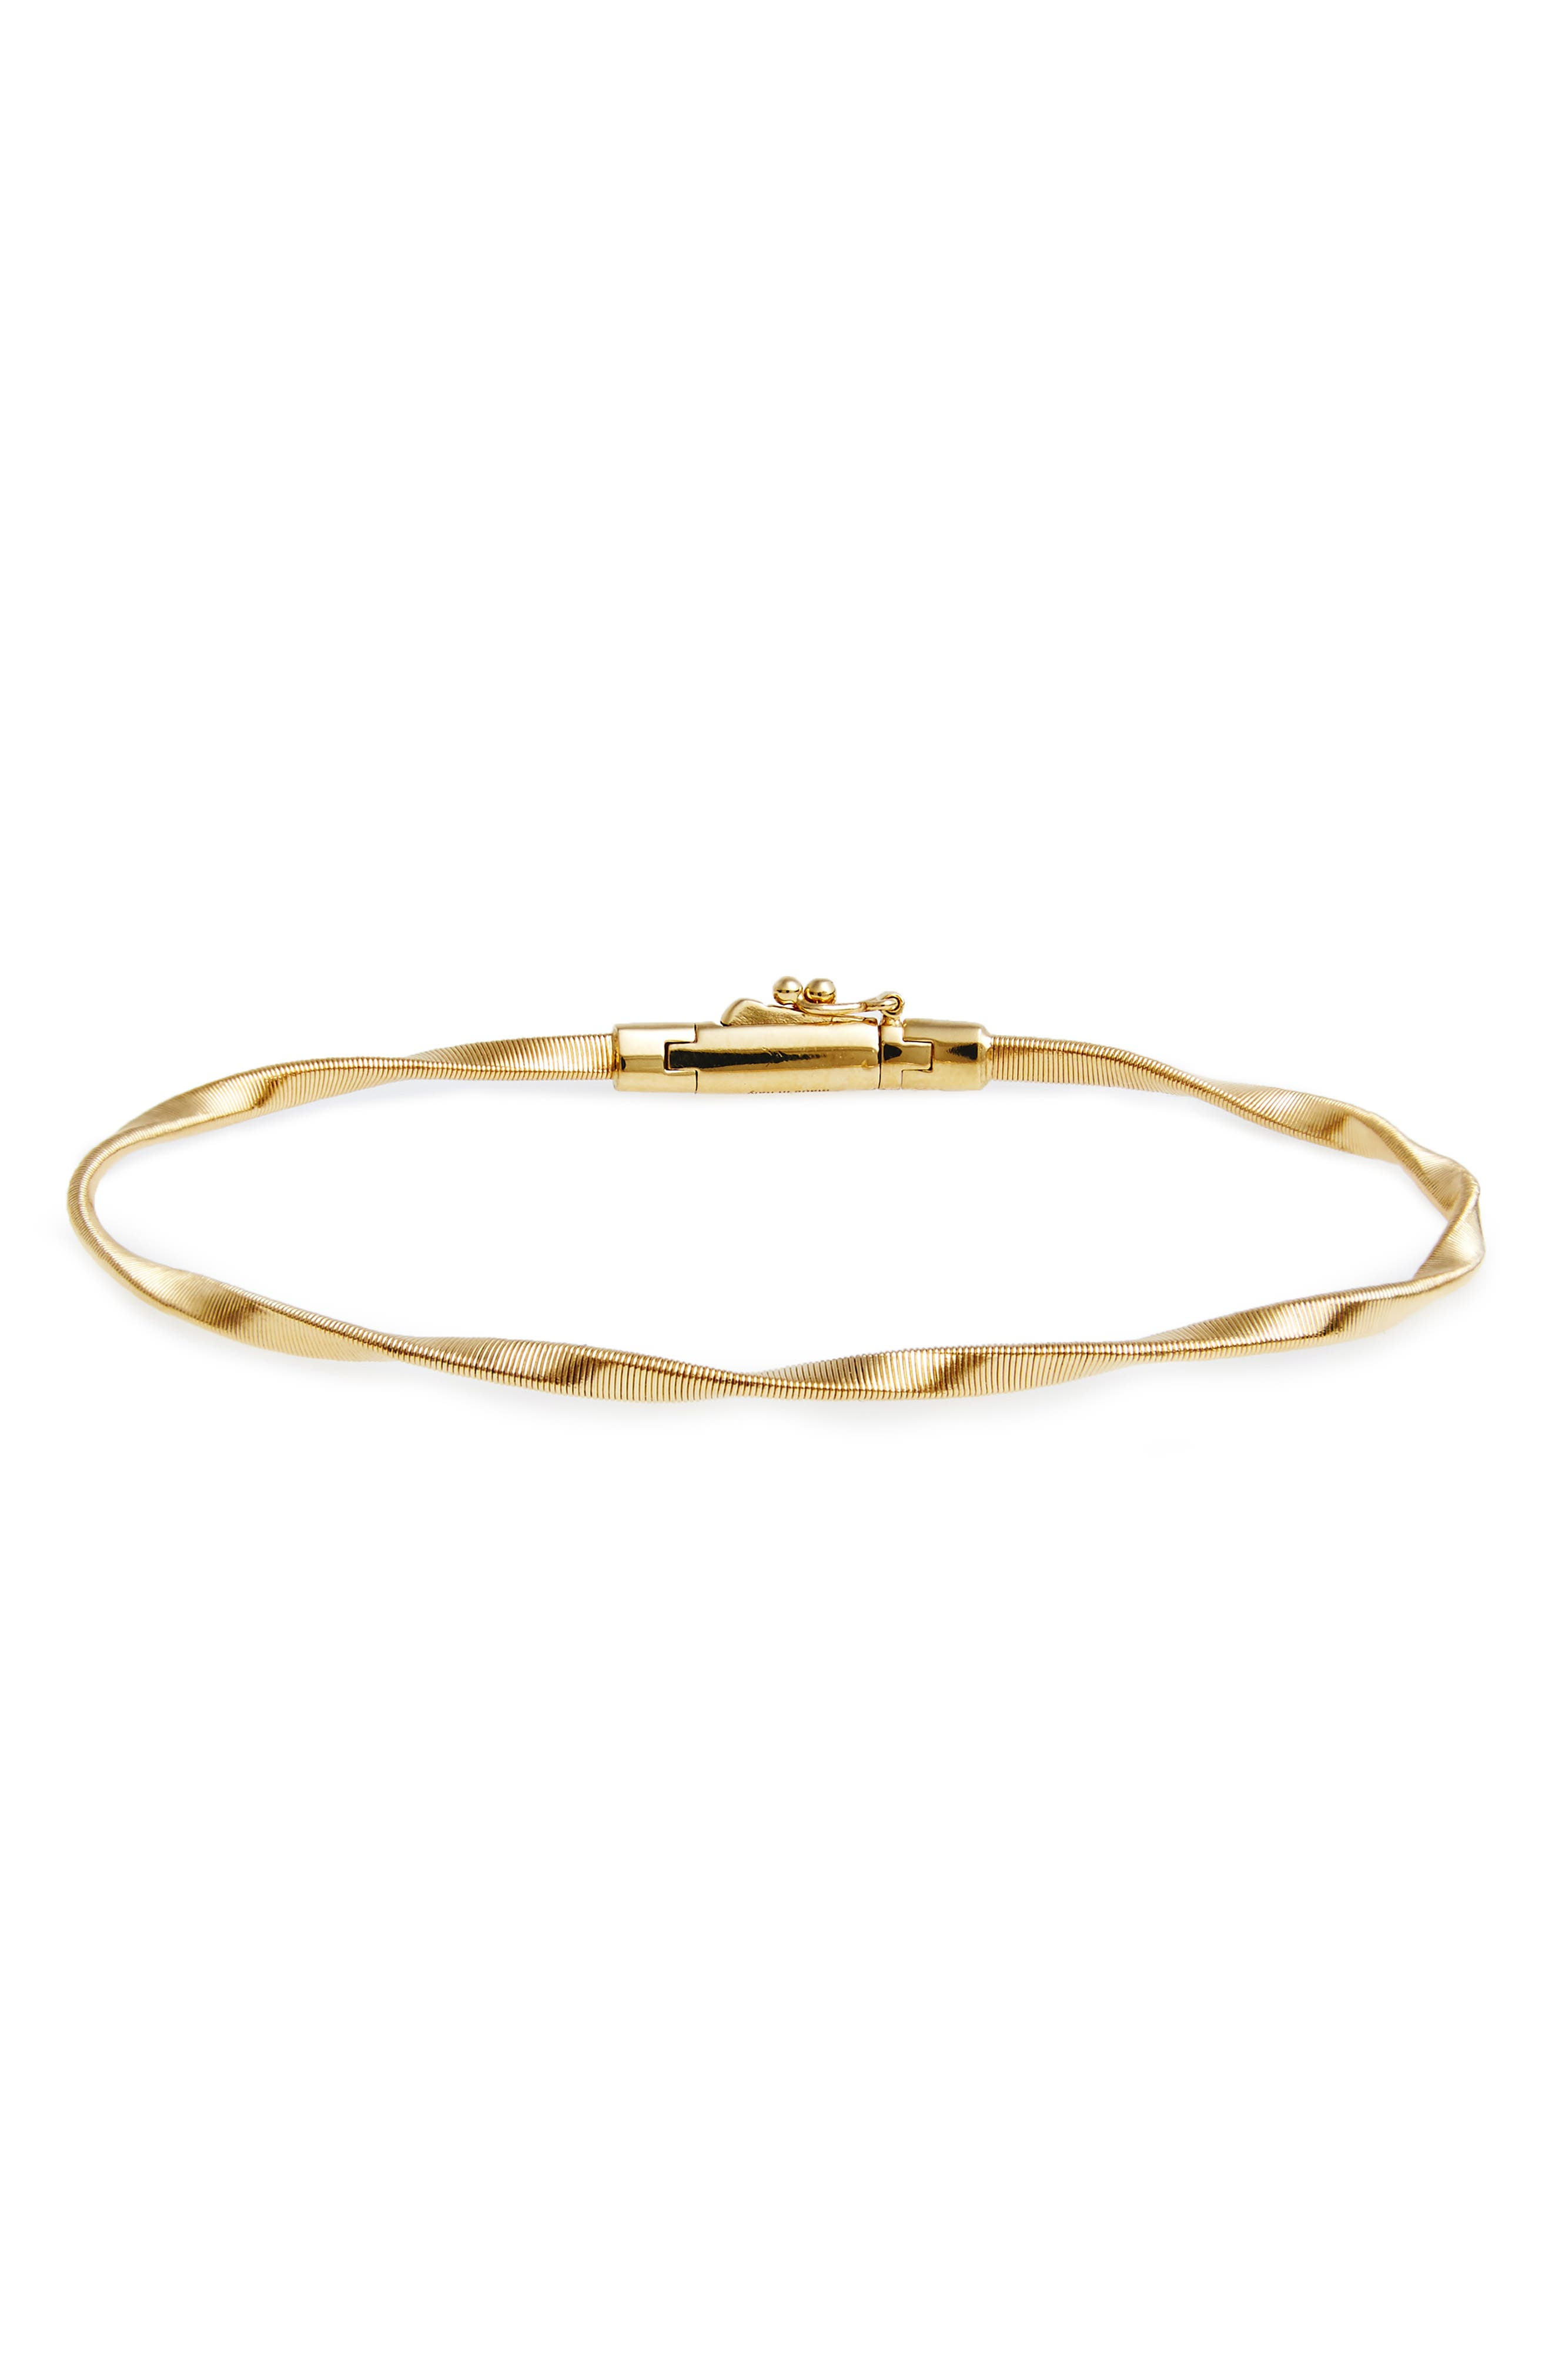 'Marrakech' Single Strand Bracelet,                             Main thumbnail 1, color,                             YELLOW GOLD